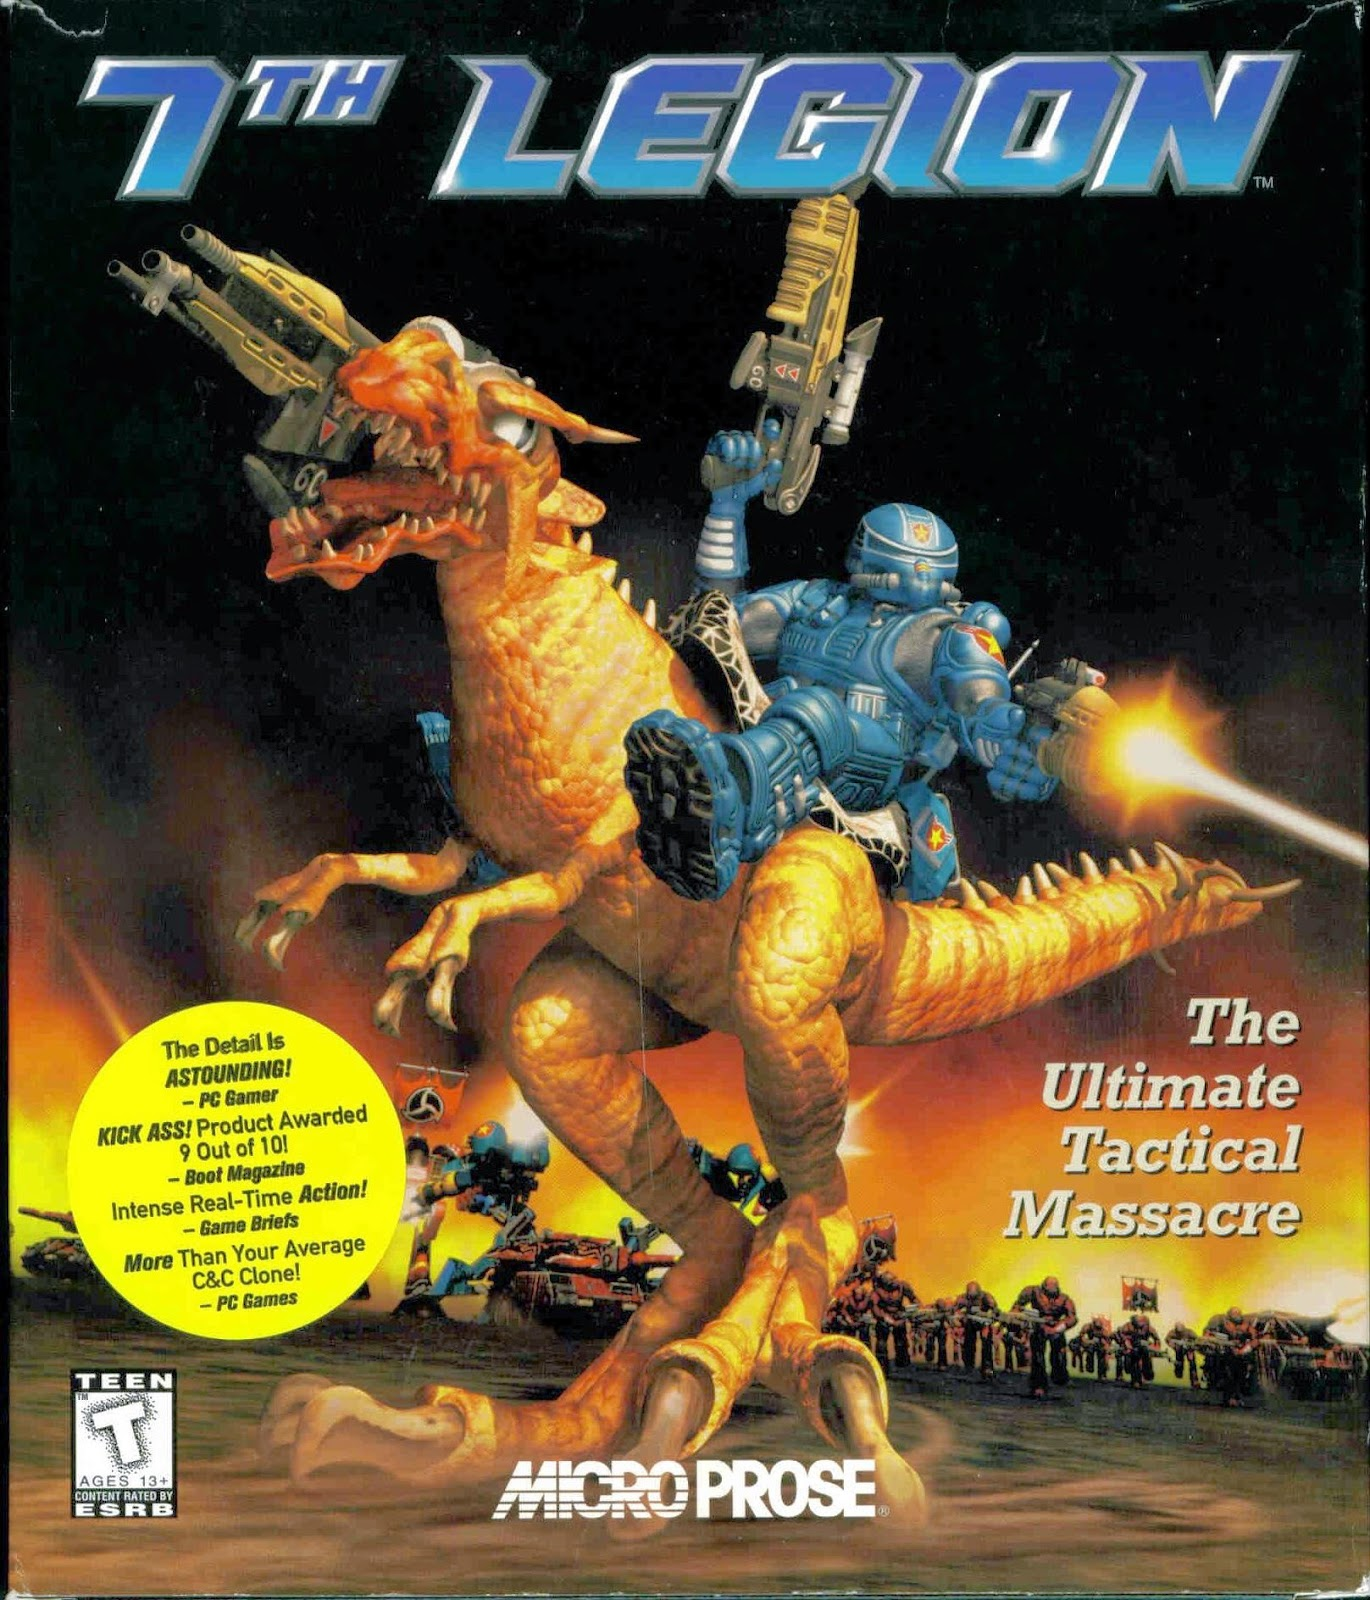 7th Legion Game